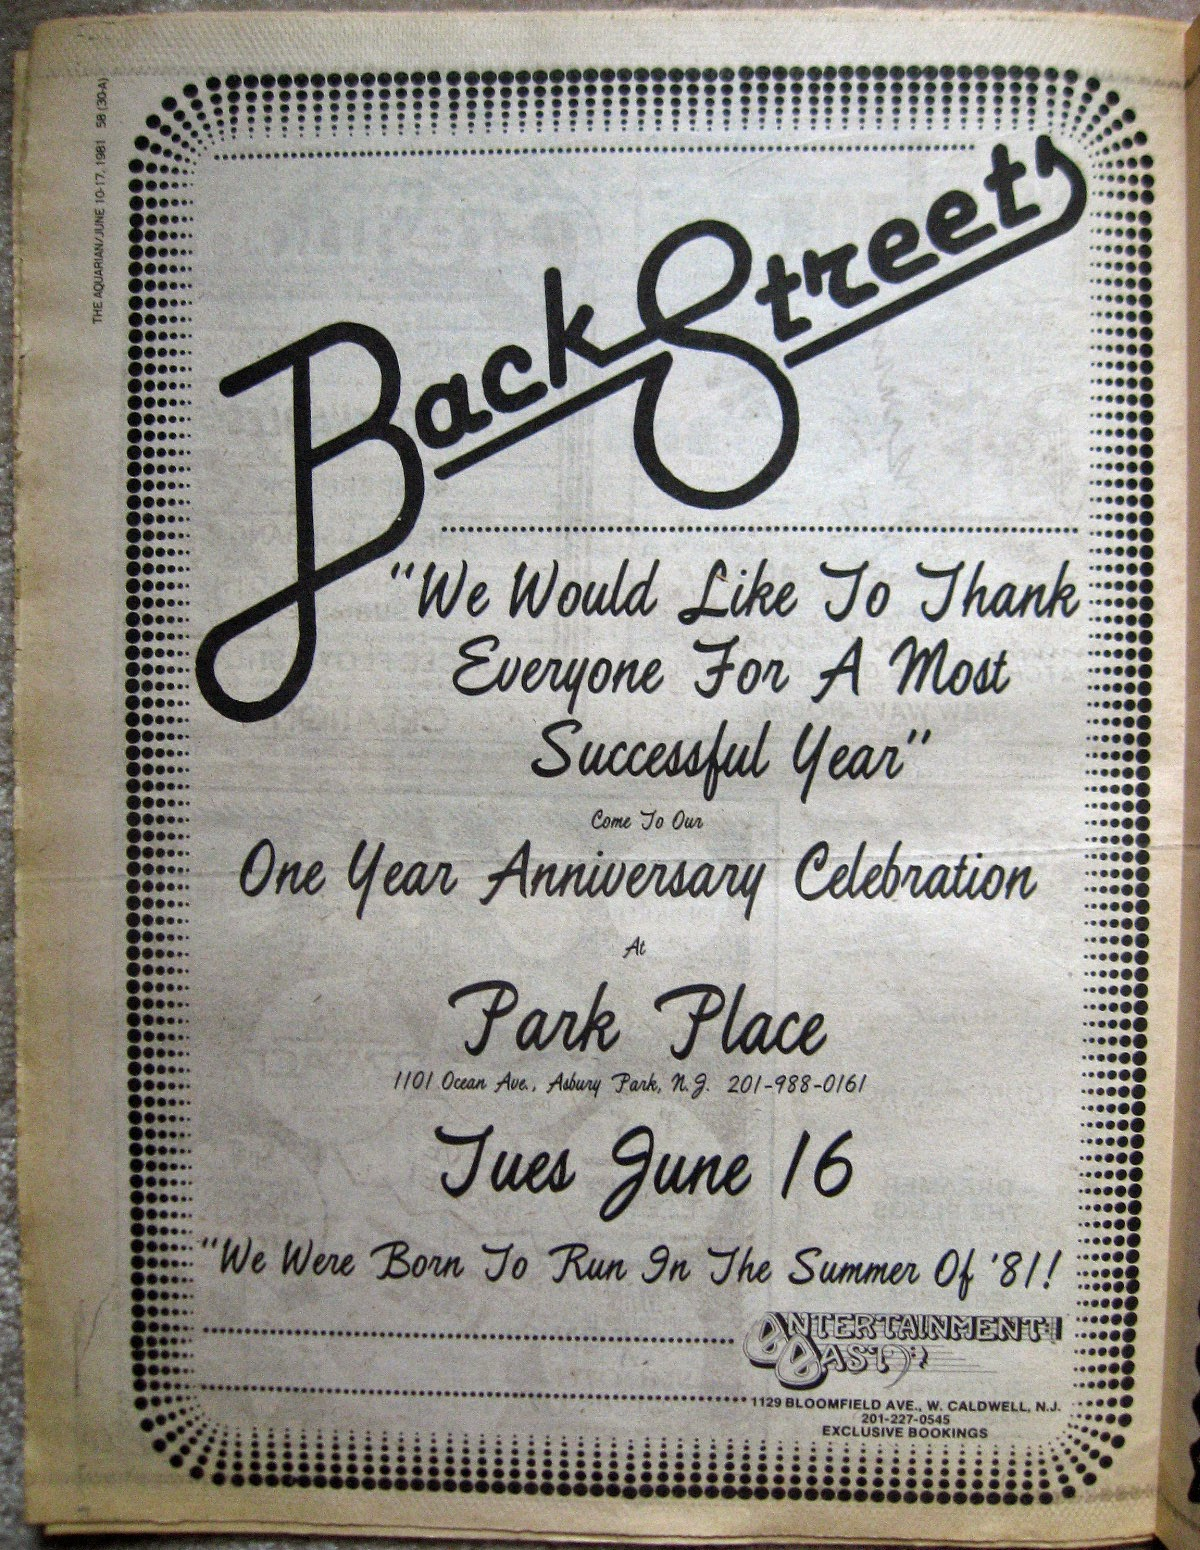 Backstreets full page thank you 1981